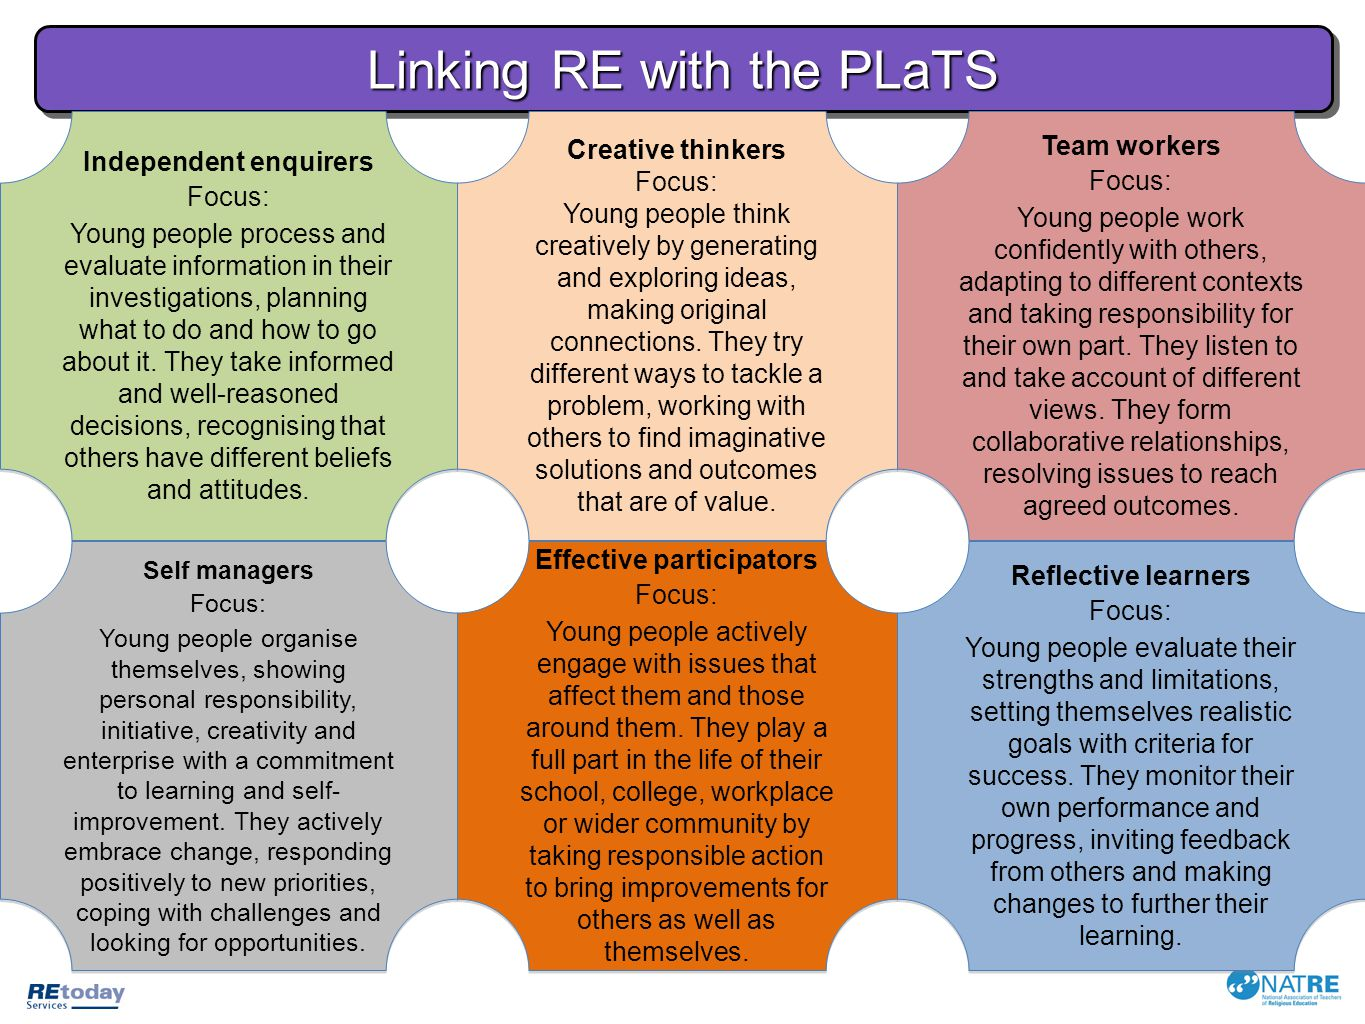 Linking RE with the PLaTS To link RE with the Personal, Learning and Thinking Skills (PLaTS), it is best to start with your RE programmes of study and make connections to the PLaTS.